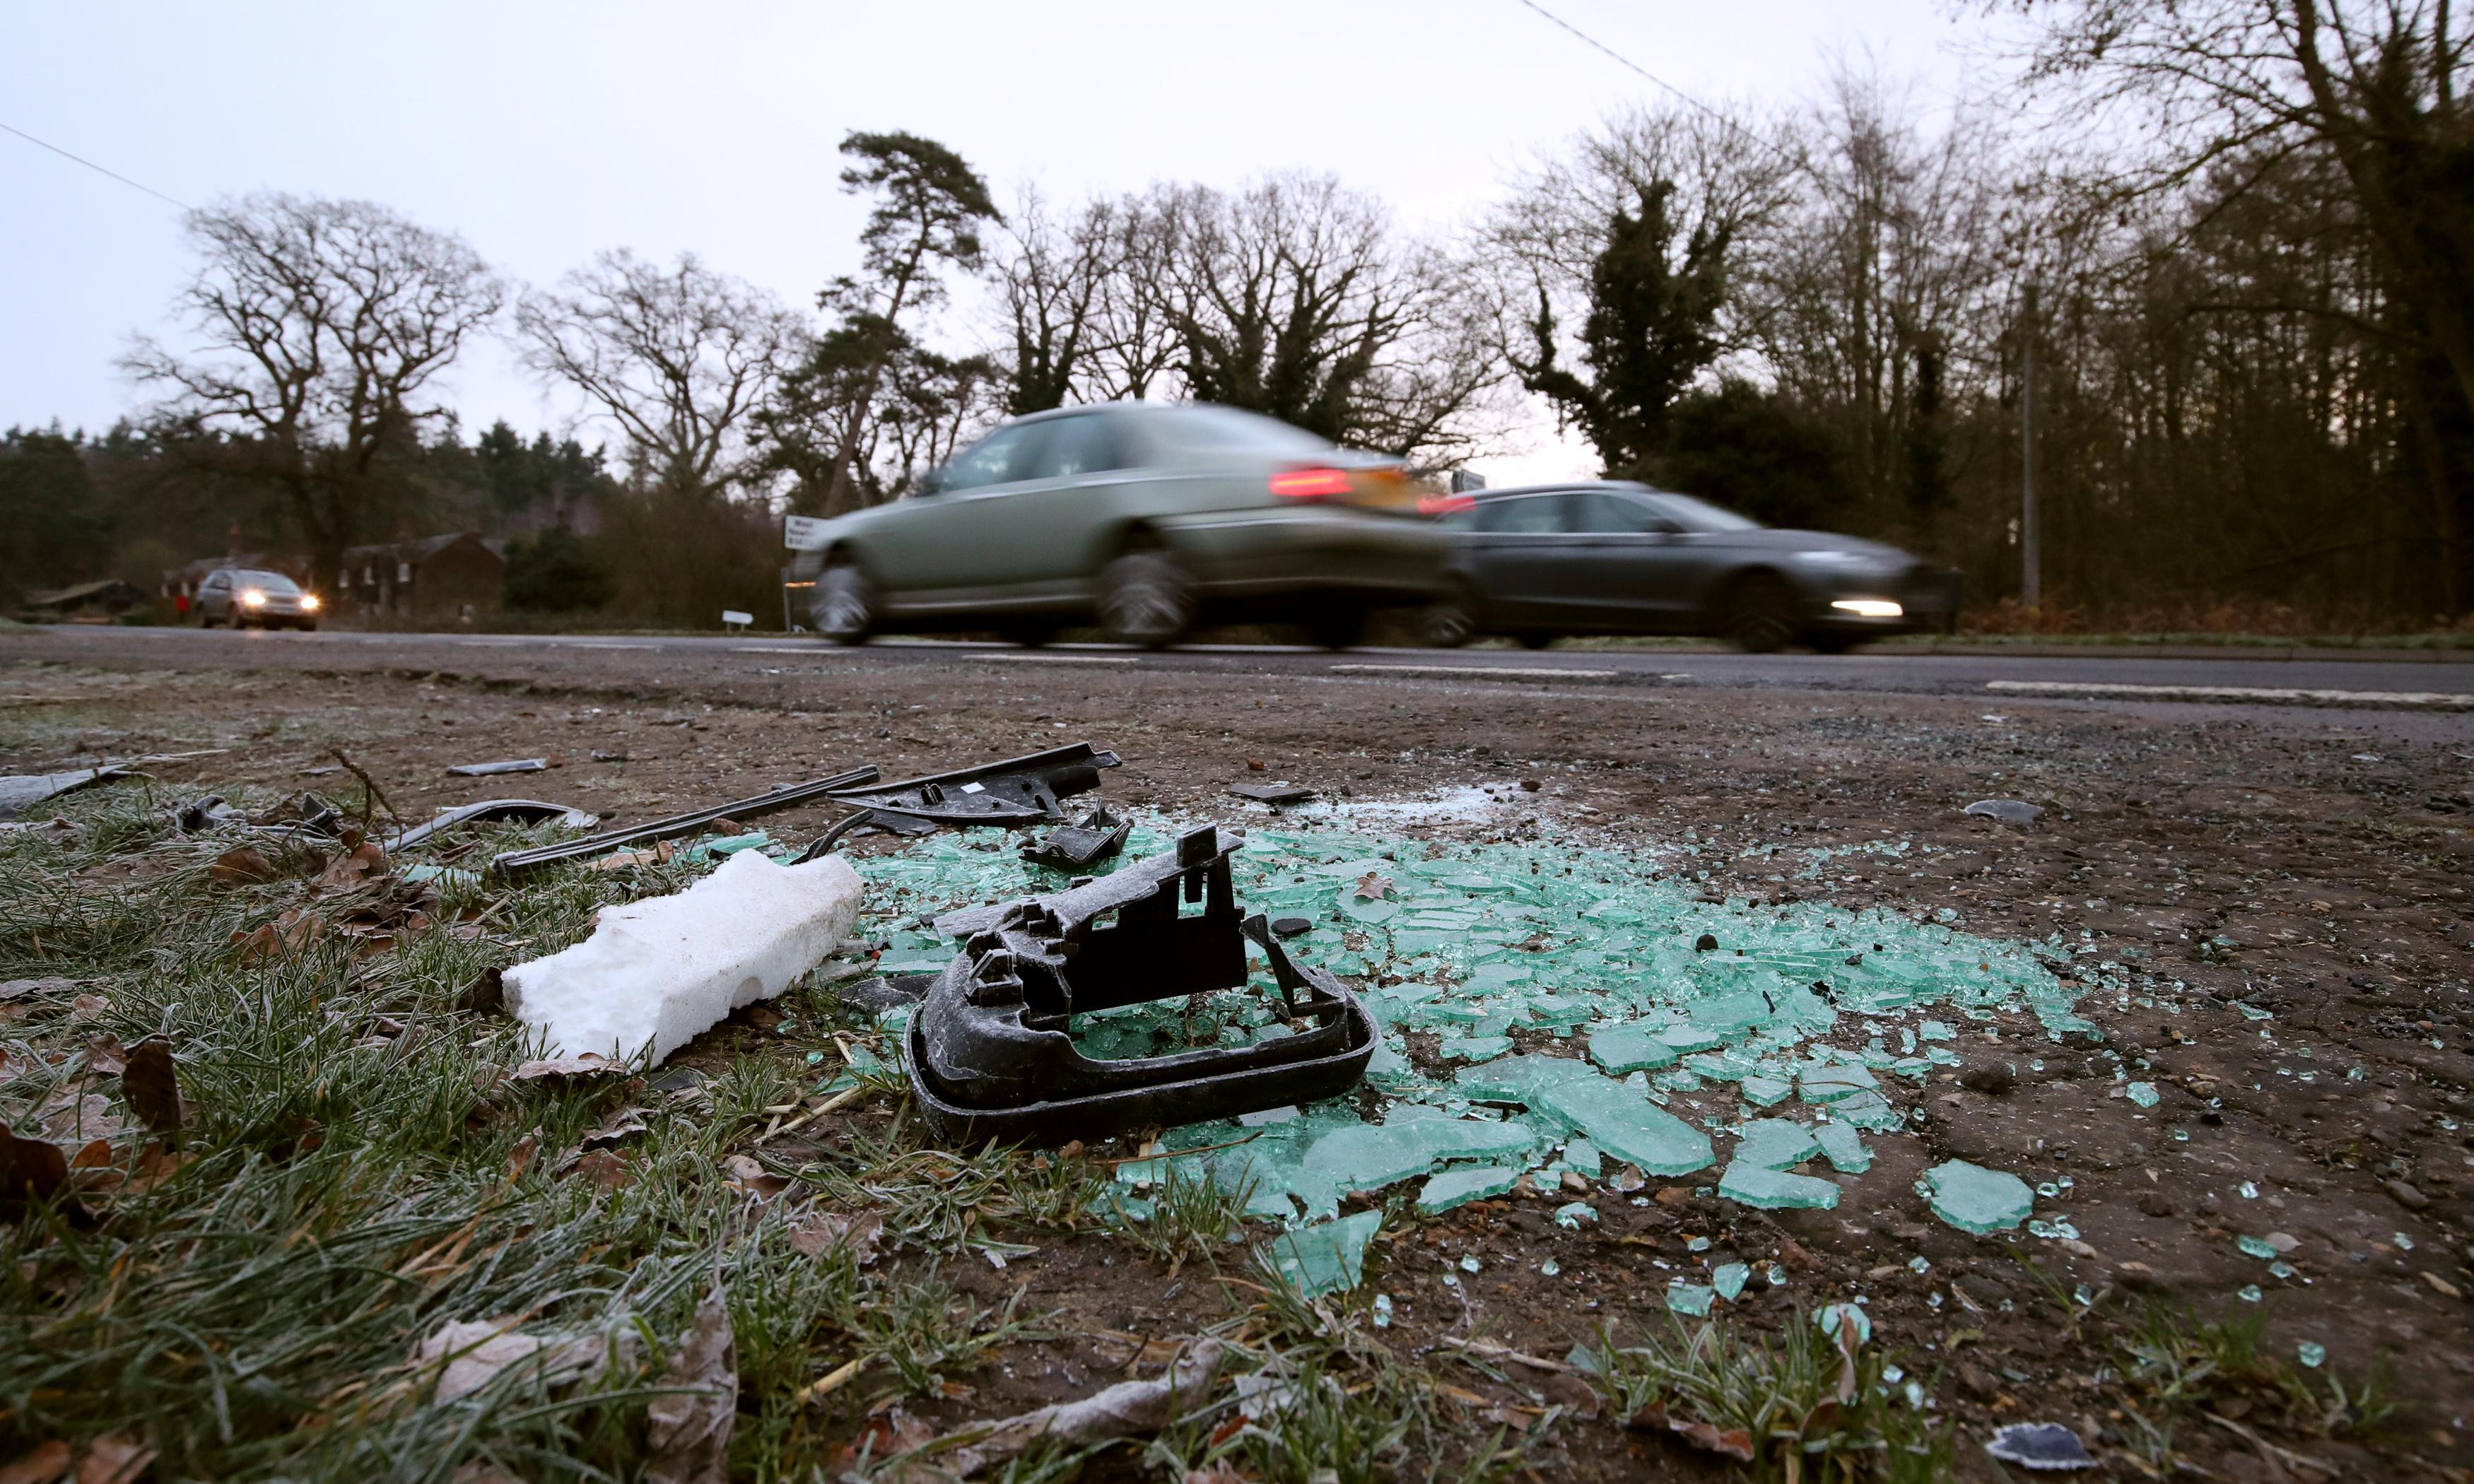 Prince Philip has not said sorry for car crash, injured woman claims